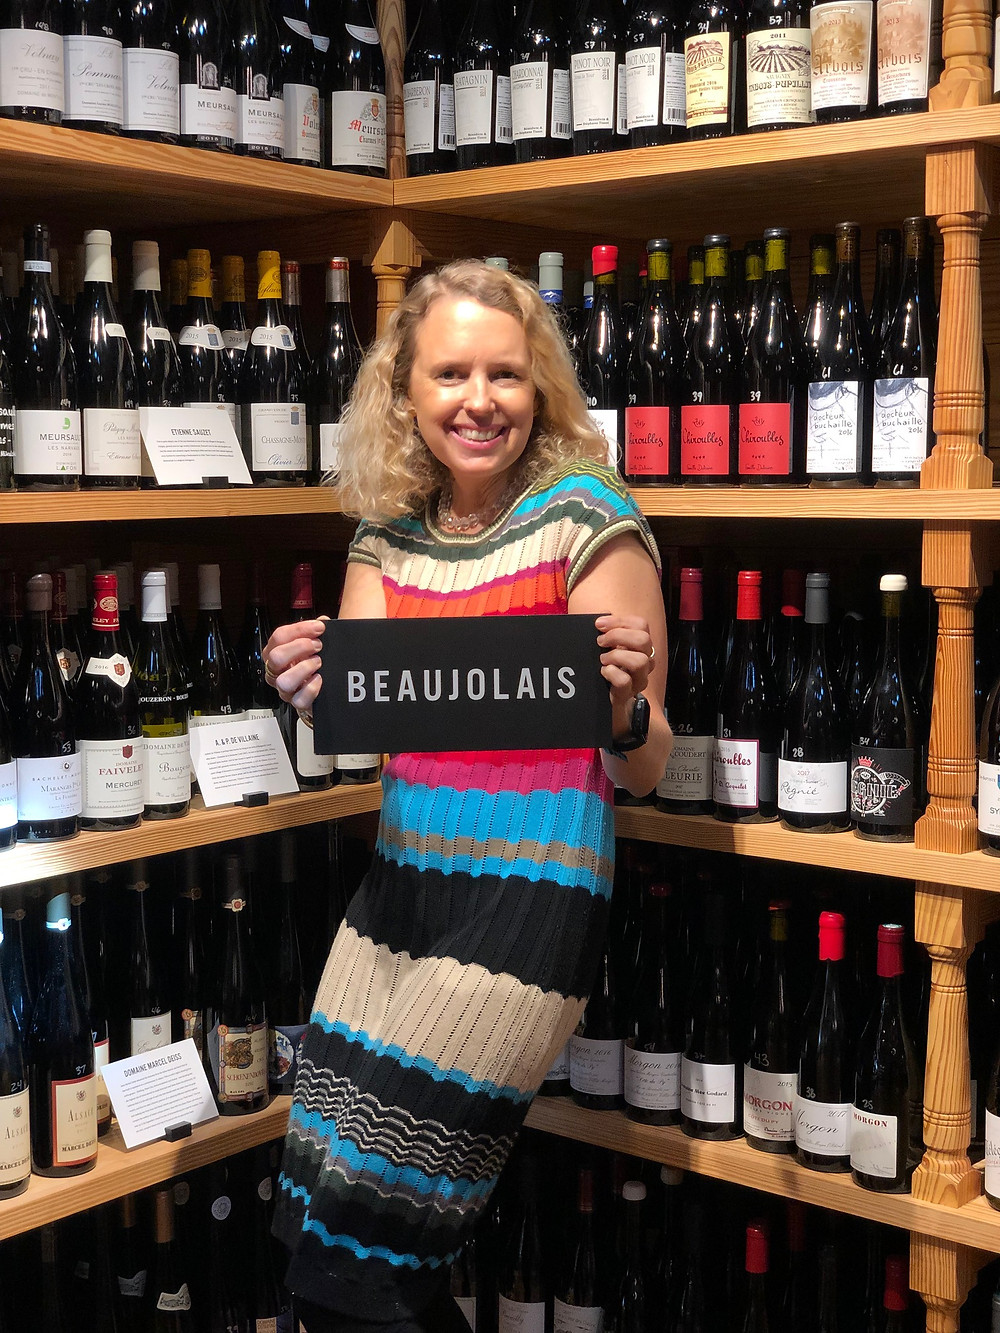 Cru Beaujolais is a superior designation for wine produced in the Beaujolais region of France. This is wine made from the Gamay grape grown on the granite slopes of northern Beaujolais -- creating beautiful, age-worthy wine.